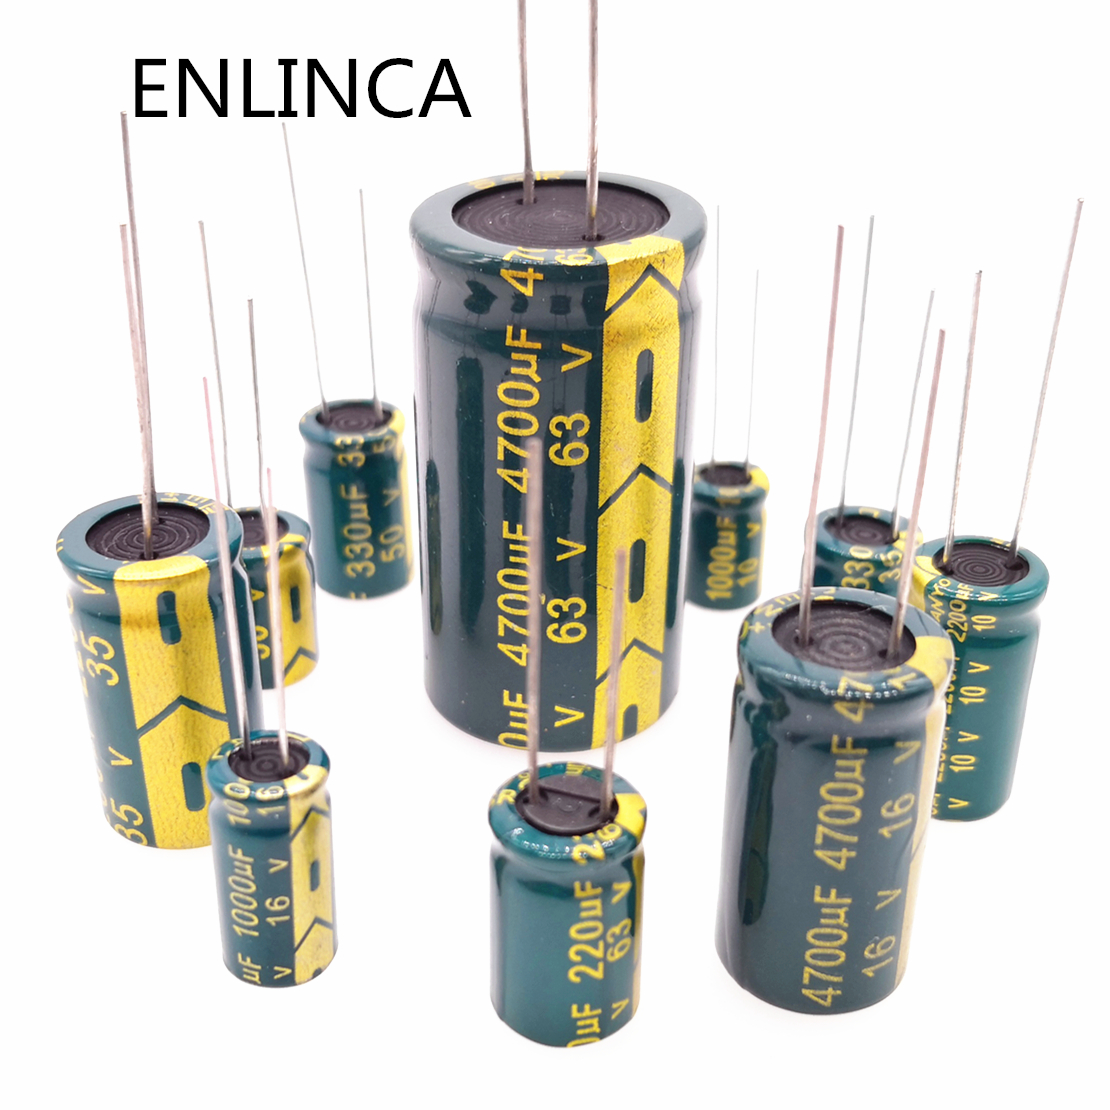 5-20pcs 10V 16V 25V 35V 50V Low ESR High Frequency Aluminum Capacitor 2.2uf 4.7uf 6.8uf 10uf 22uf 33uf 68uf 82uf 120uf 150uf 20%